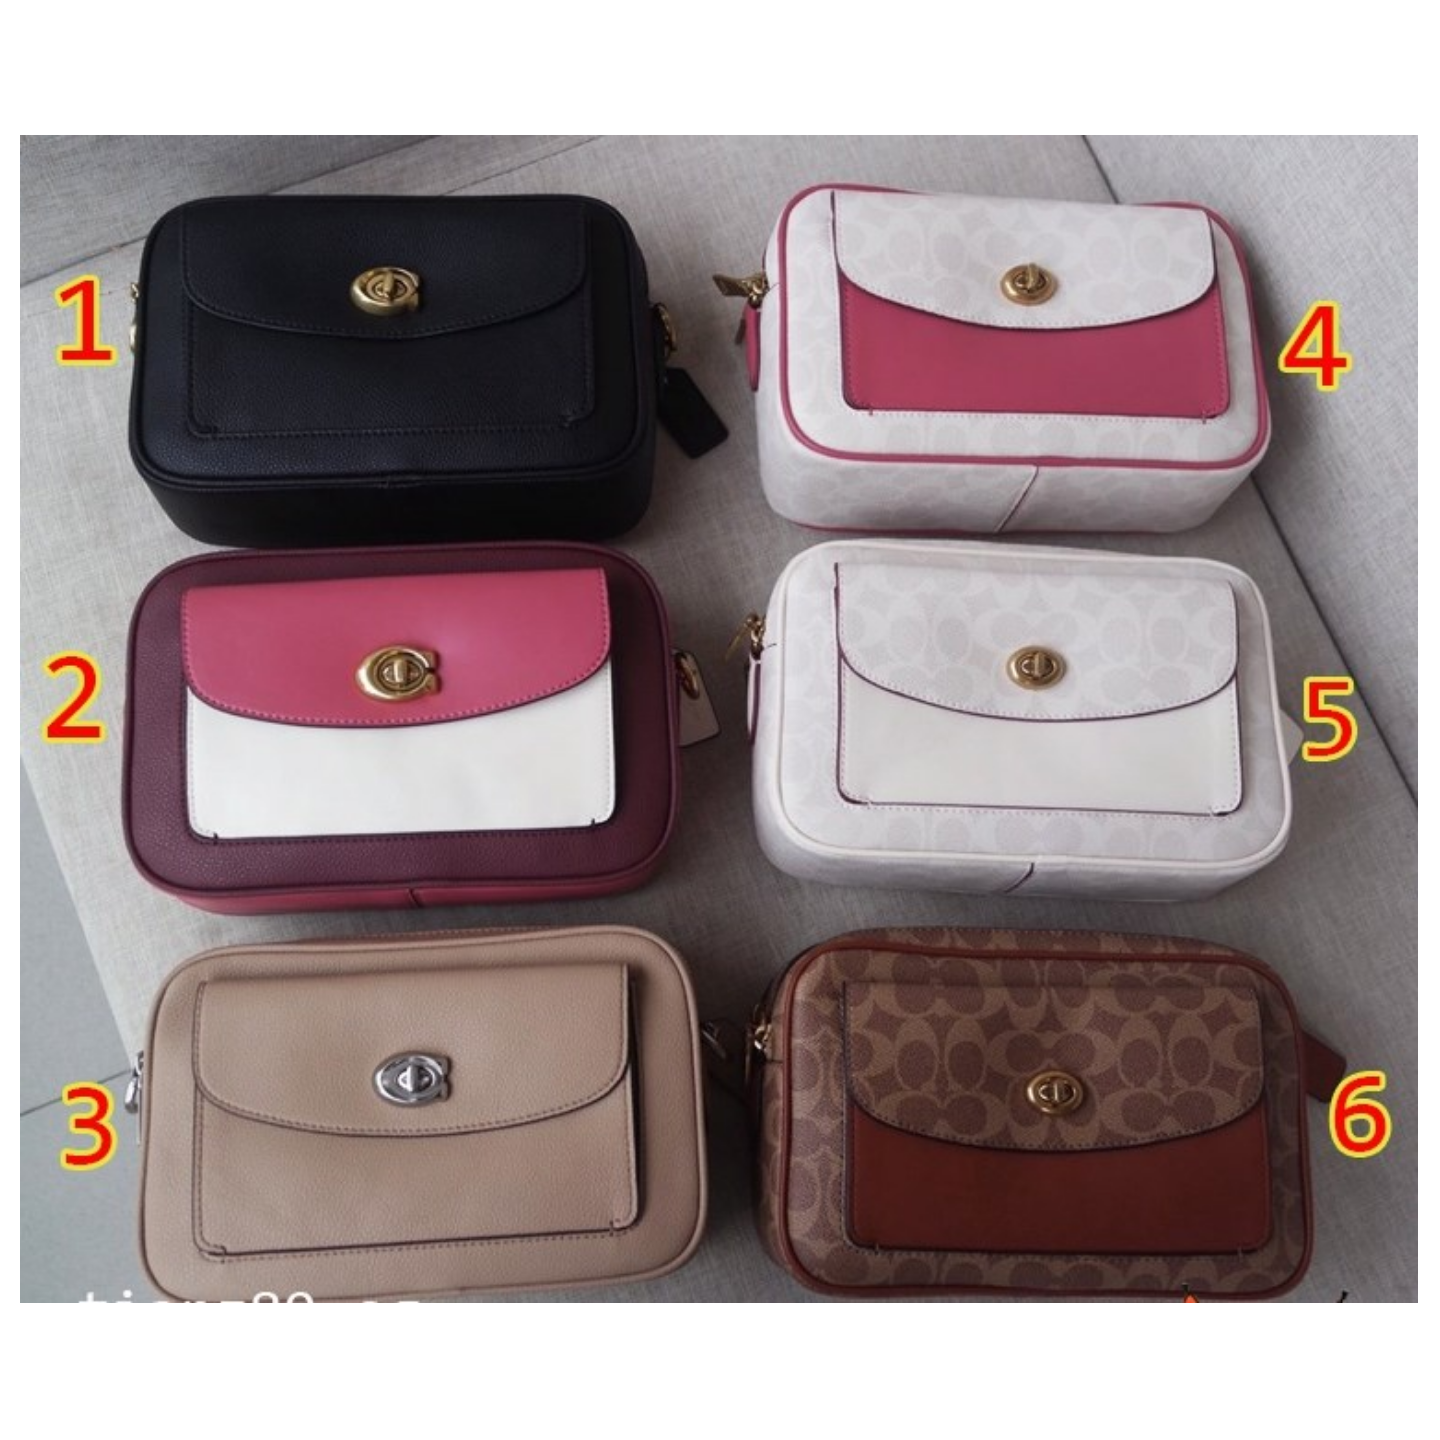 (SG COD)  Women's Coach Bag / F639 F640 / camera bag / sling bag / Crossbody Bag / shoulder bag